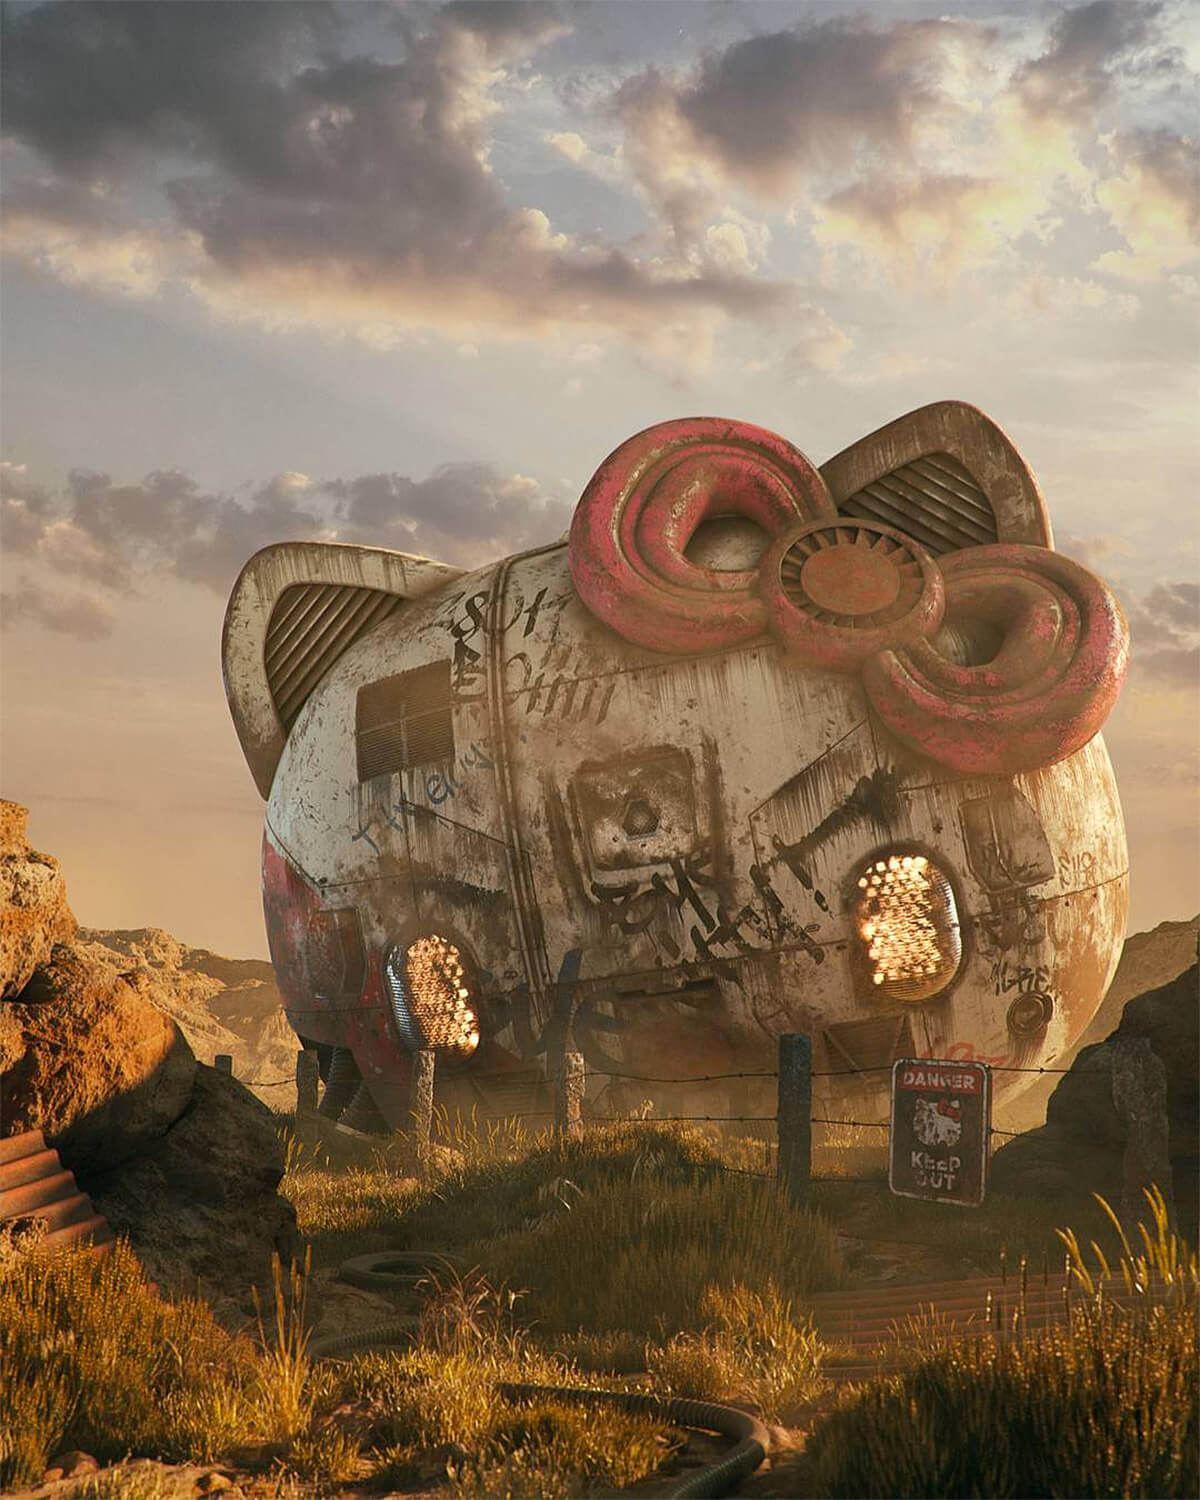 Filip Hodas pop culture icons art 7